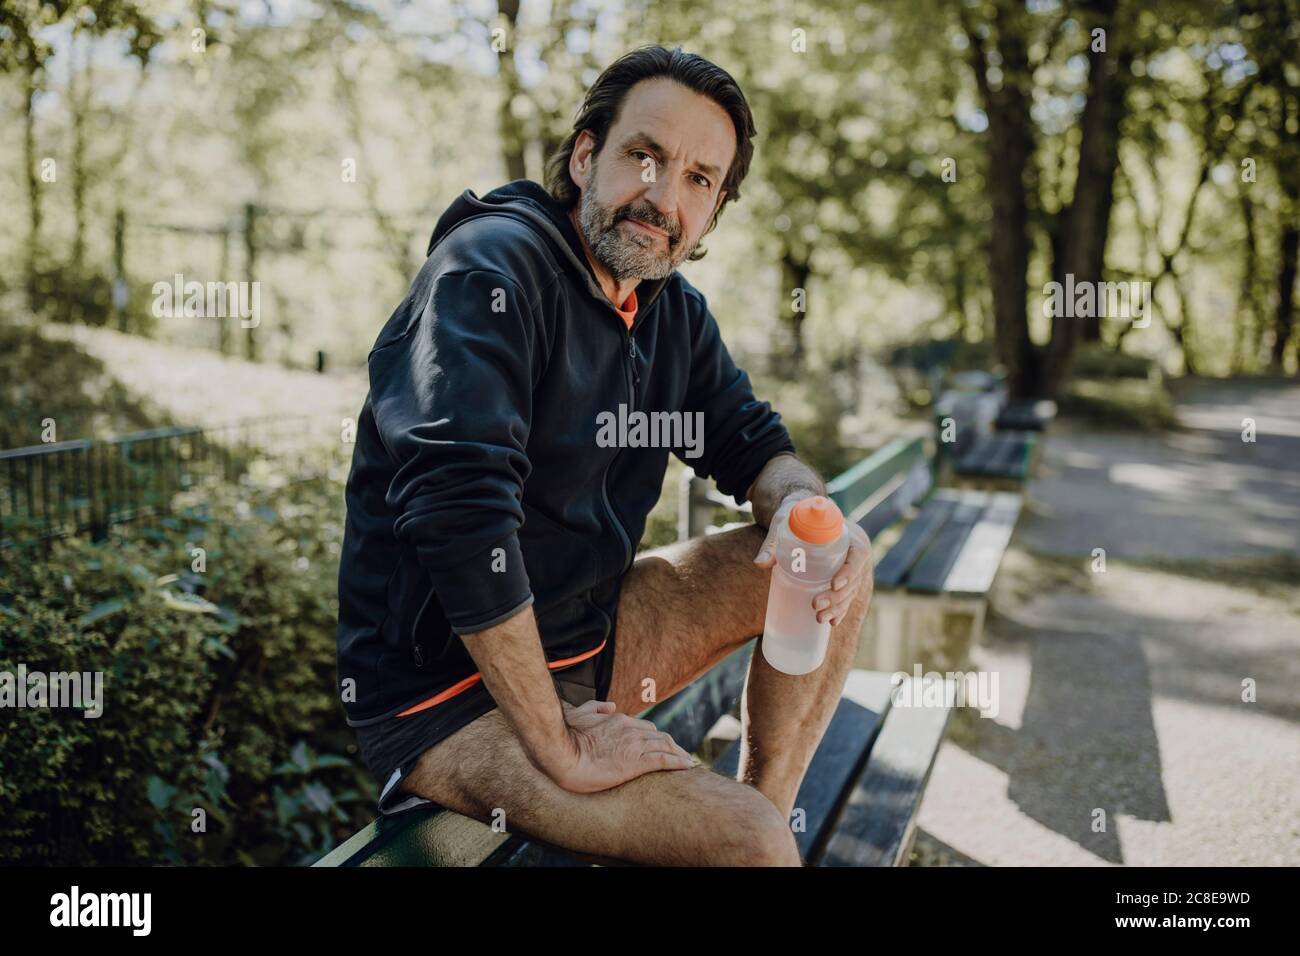 Confident mature man holding water bottle while sitting on bench in park Stock Photo